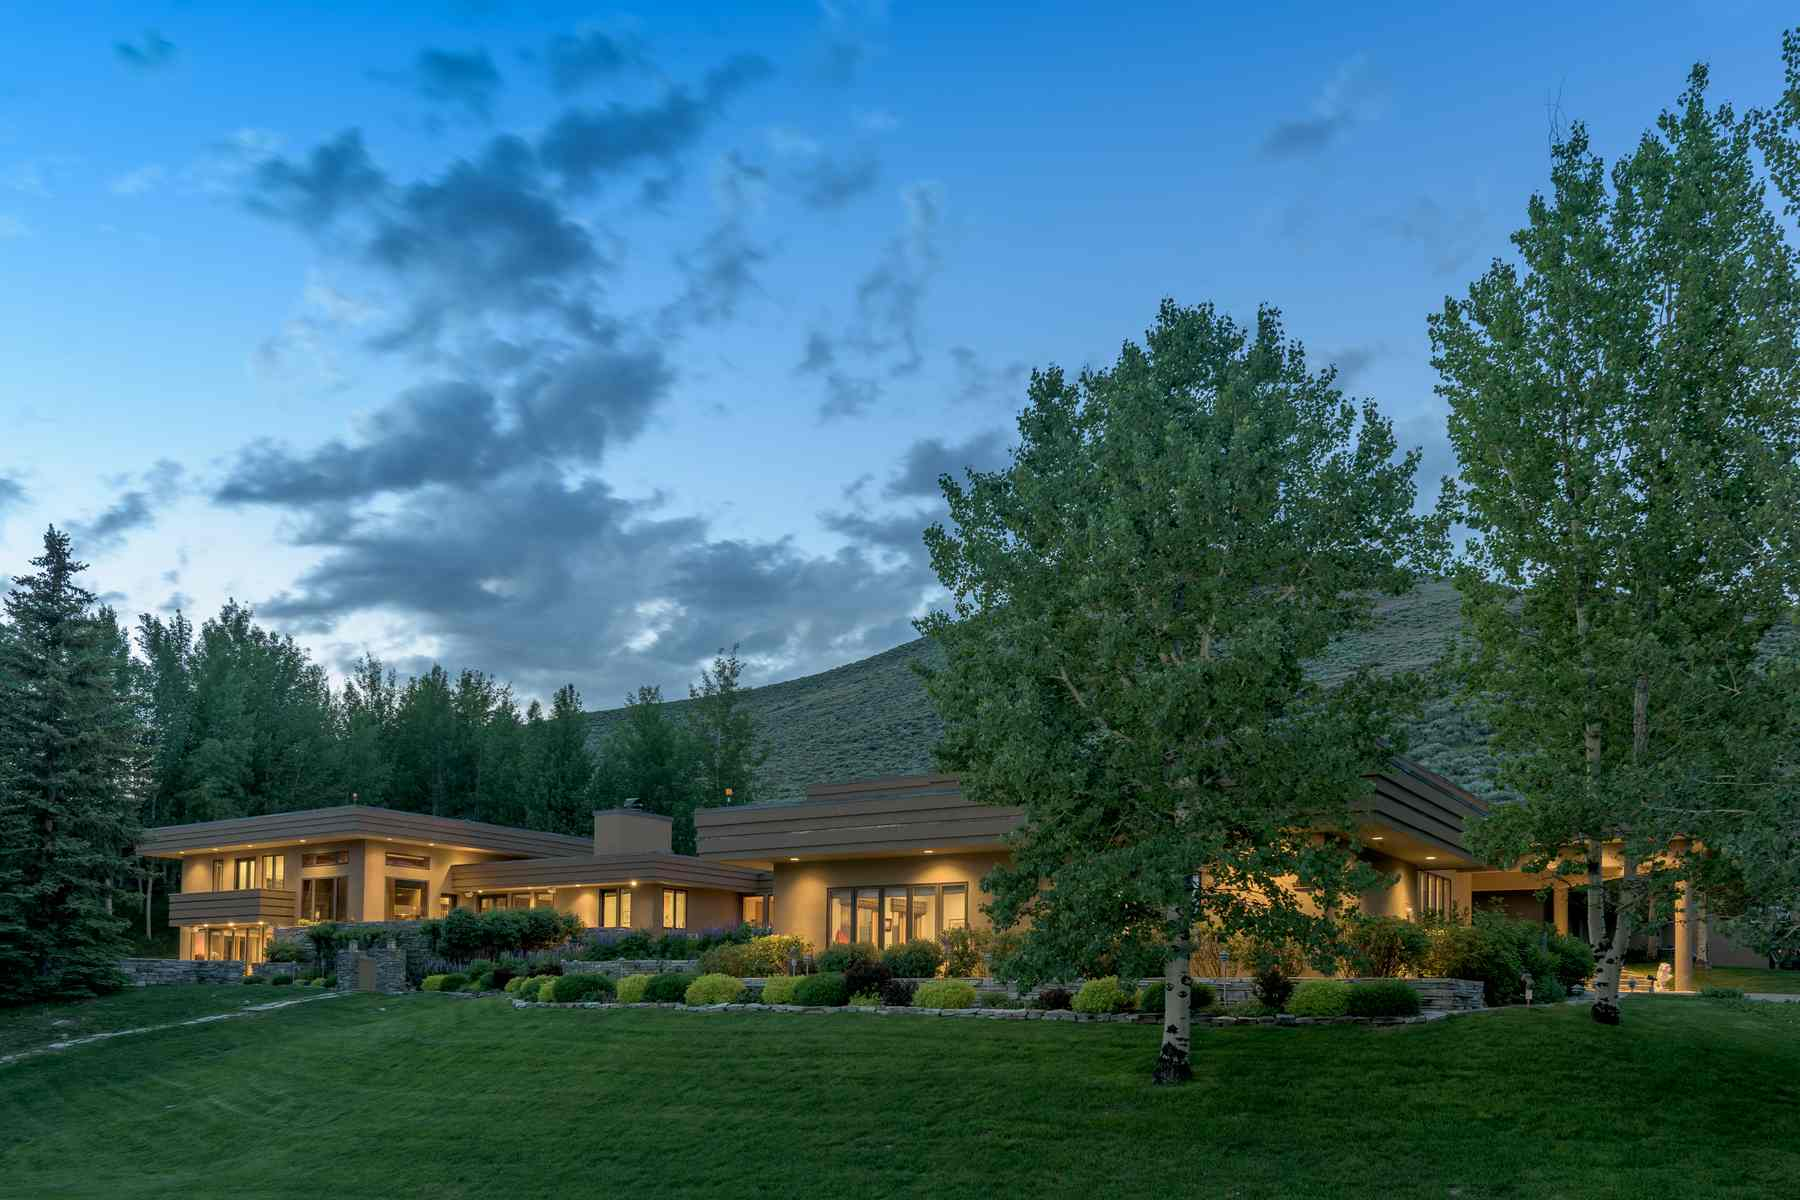 Vivienda unifamiliar por un Venta en Spectacular Elevated Setting 455 N. Bigwood Drive Ketchum, Idaho, 83340 Estados Unidos